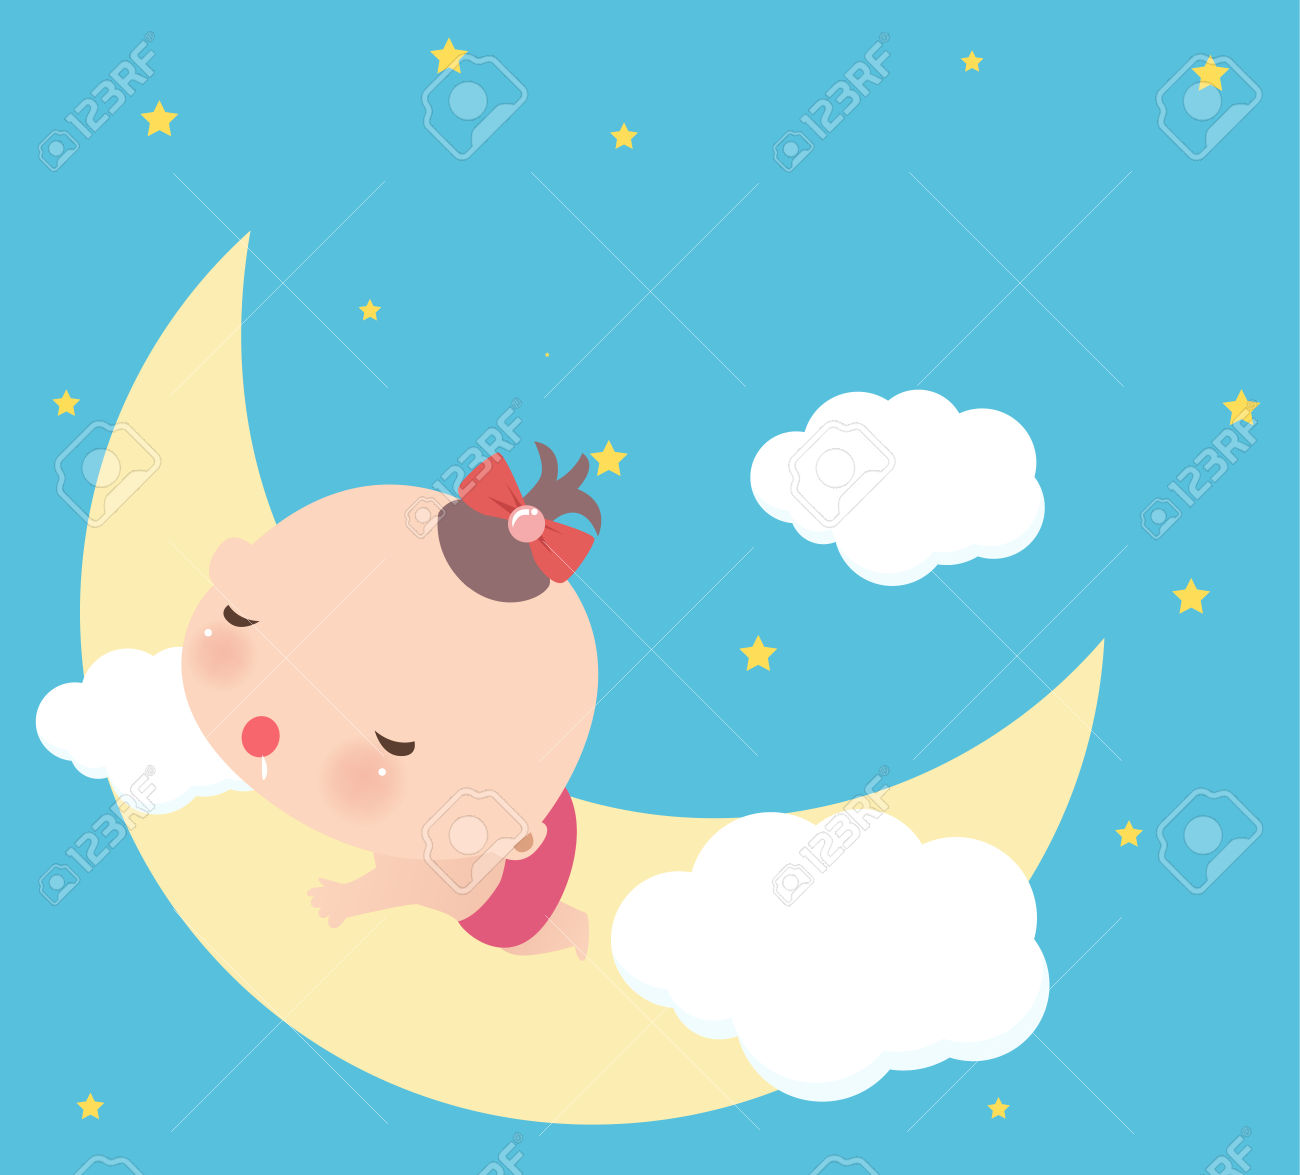 Free Sleeping Baby Cliparts, Download Free Clip Art, Free.